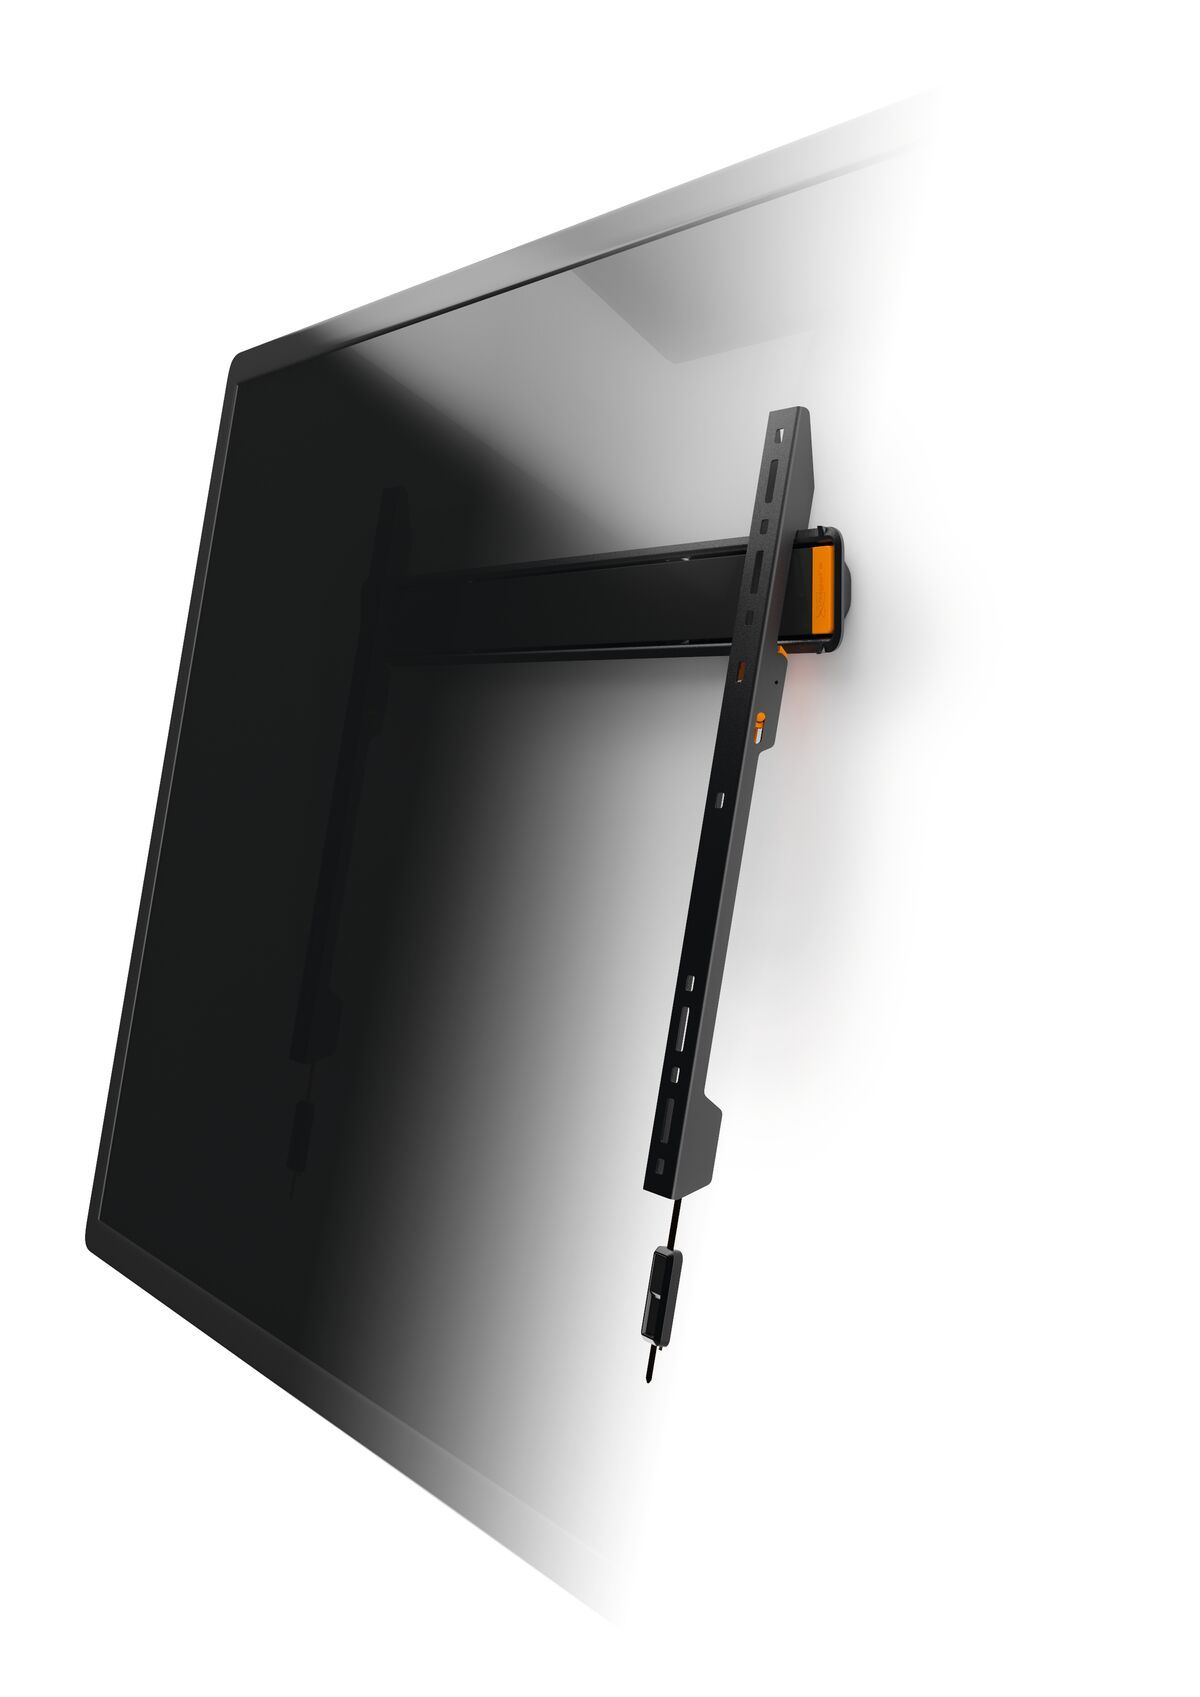 Vogel's WALL 2305 Fixed TV Wall Mount - Suitable for 40 up to 80 inch TVs up to kg - Application